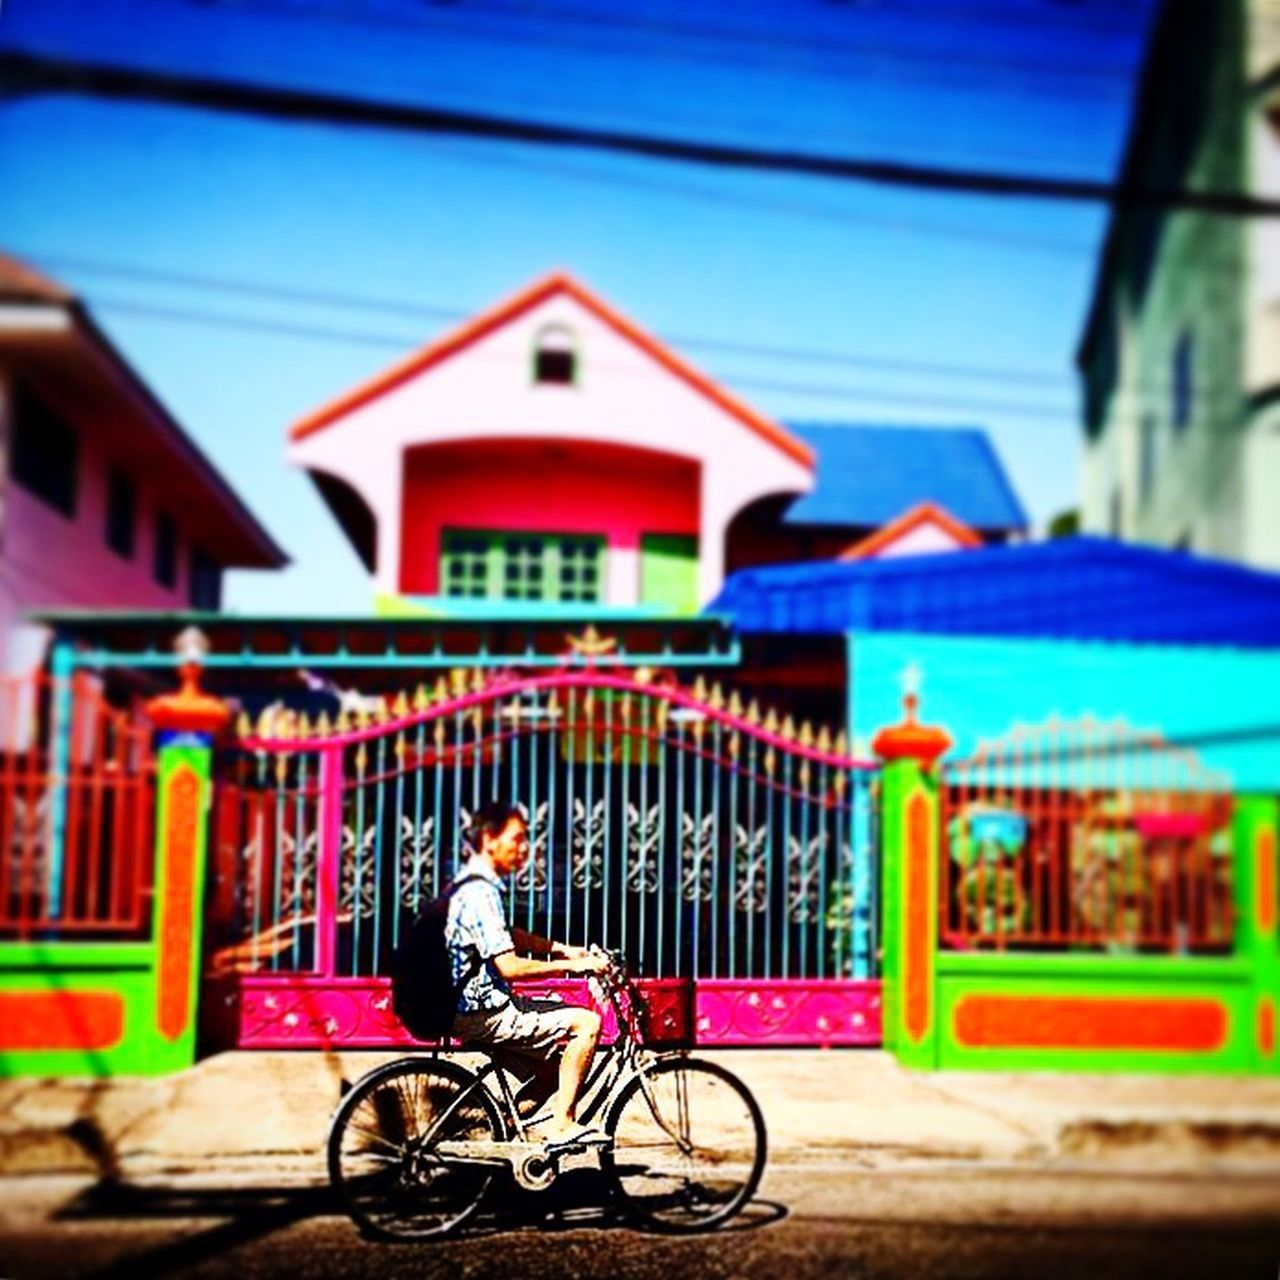 bicycle, architecture, built structure, building exterior, real people, transportation, one person, house, outdoors, mode of transport, cycling, focus on foreground, multi colored, day, land vehicle, full length, lifestyles, headwear, sky, city, people